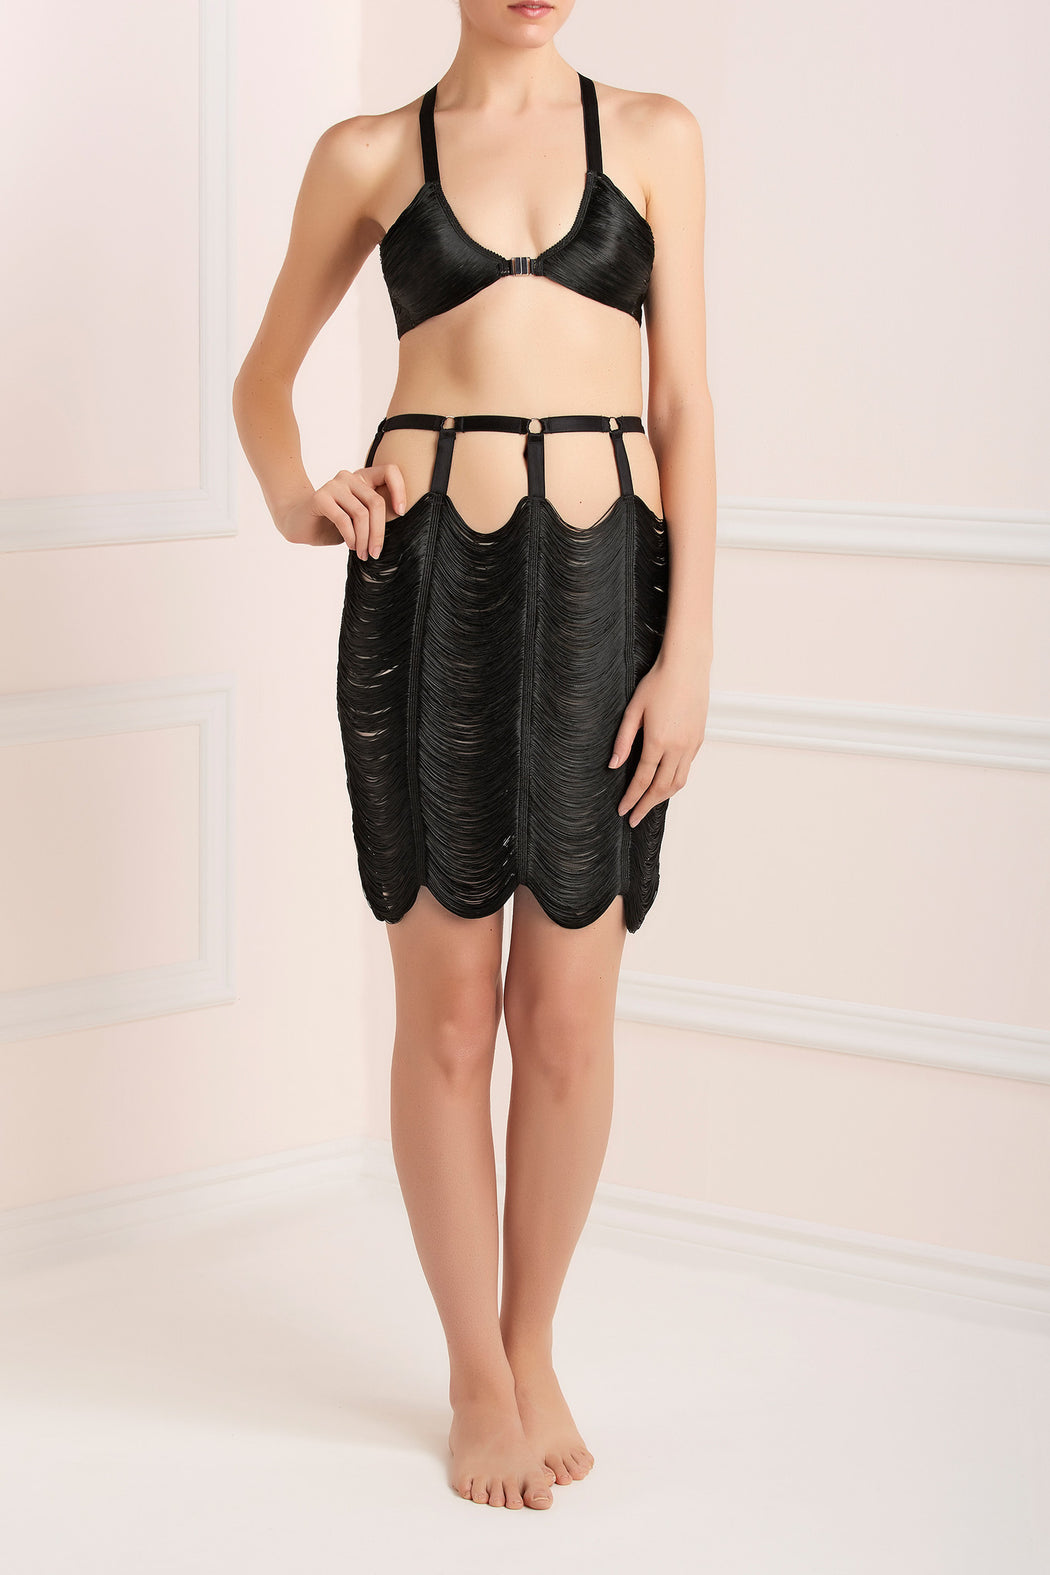 Black Strings Skirt Made By Niki Workingirls luxury lingerie